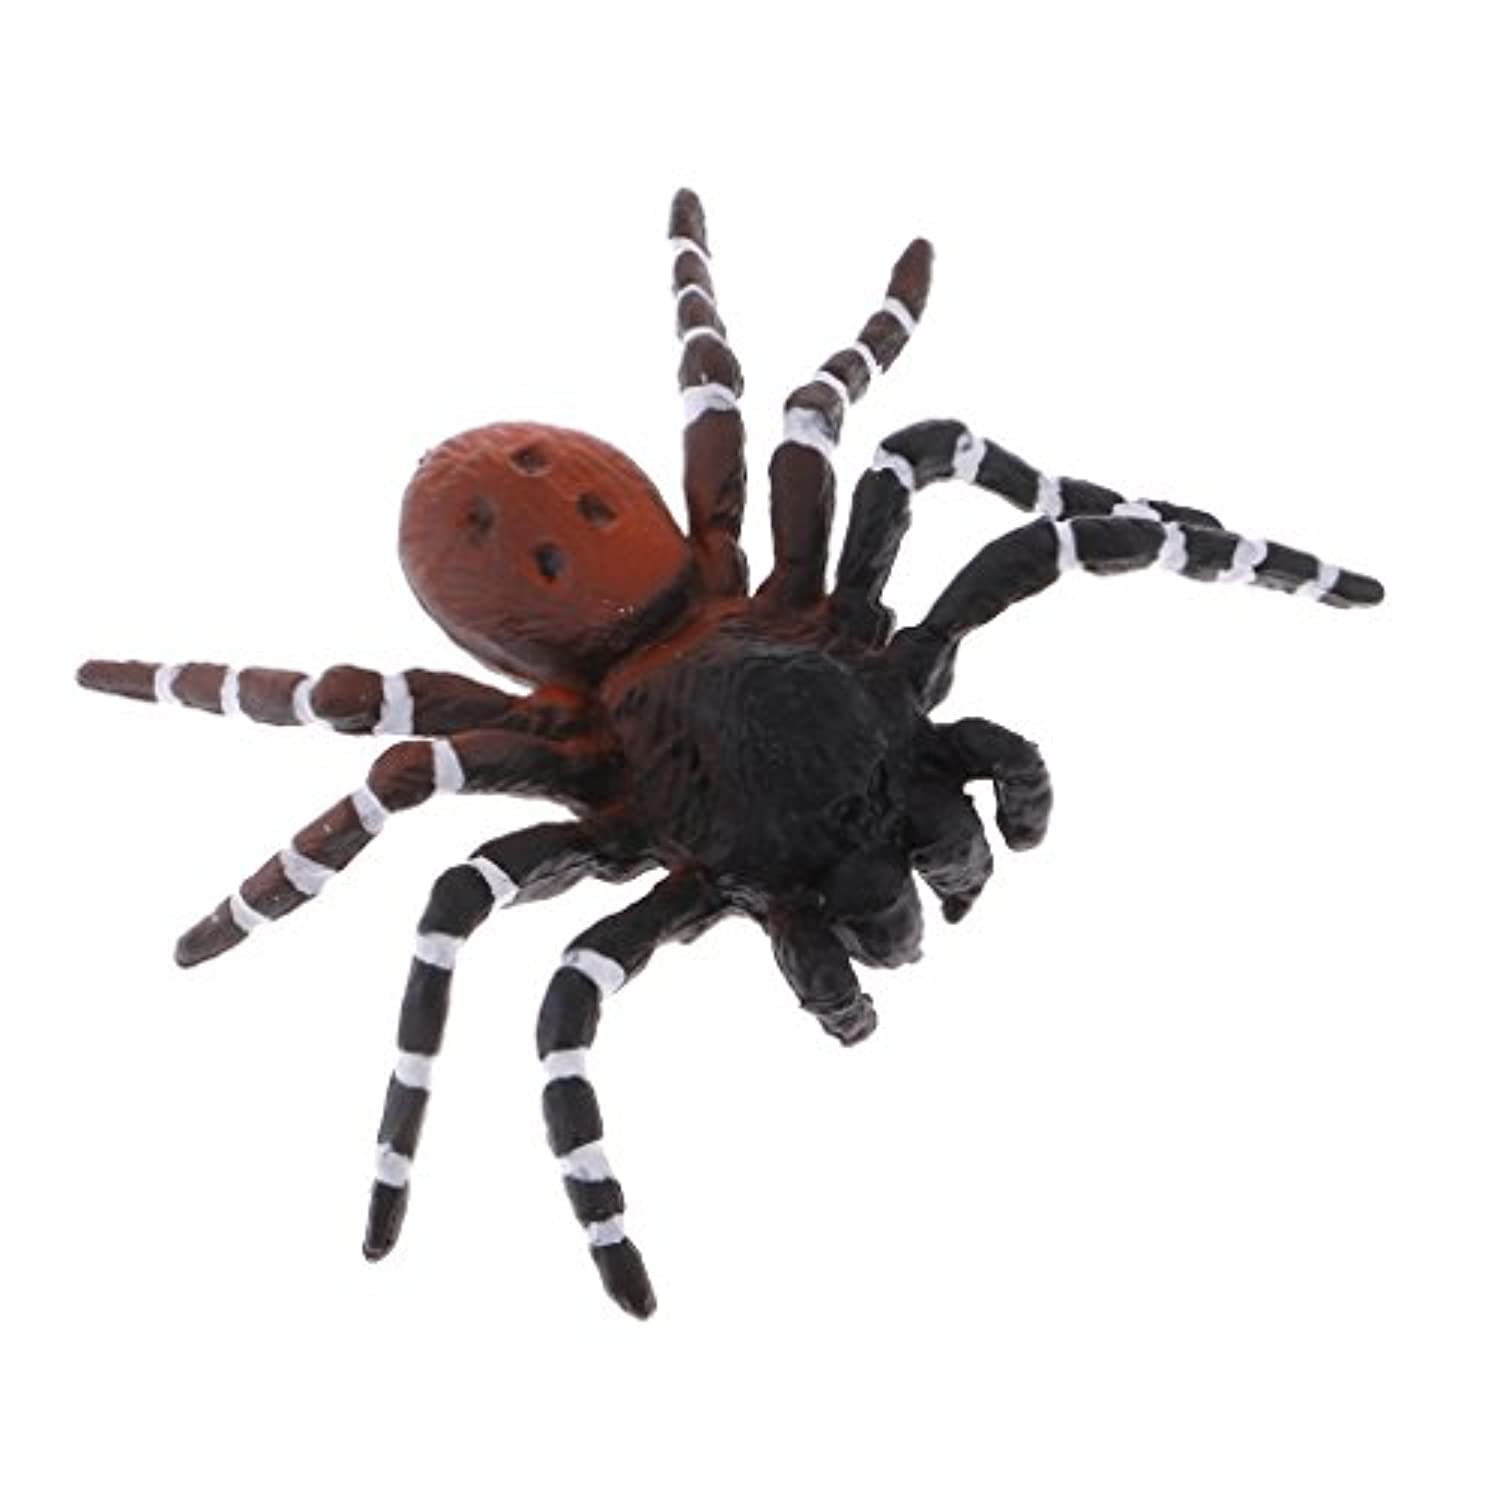 MagiDeal Realistic Science Plastic Animal Model Figure Brazilian Red Spider Figurine Children Kids Educational Toy Home Decoration Collectibles Kids Story Telling Props